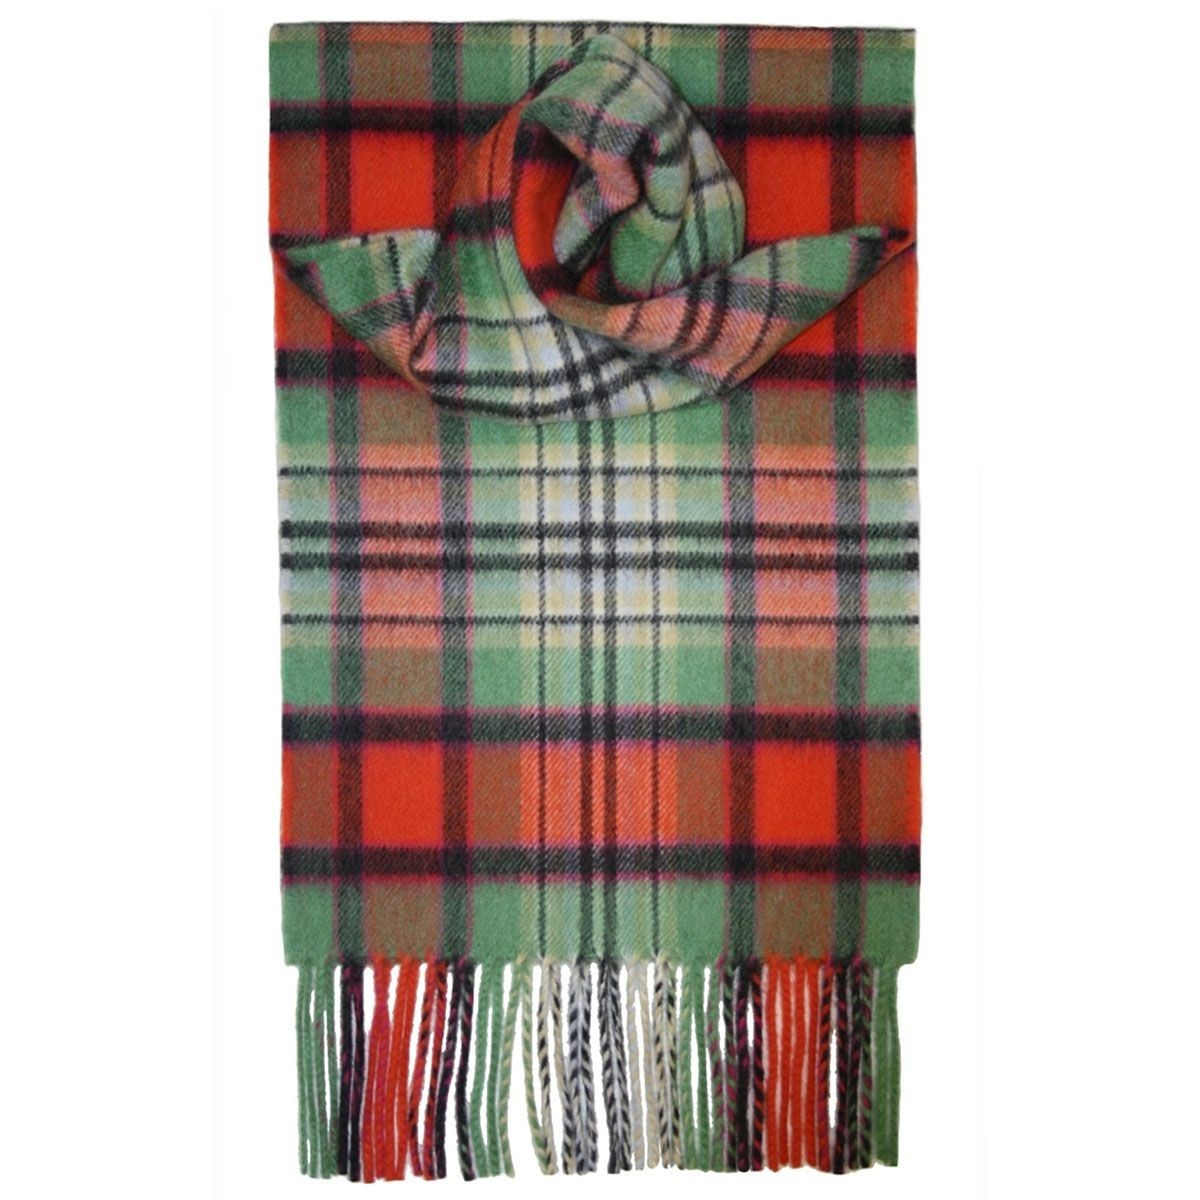 Dundee Old Ancient Tartan 100% Cashmere Scarf by Lochcarron of Scotland